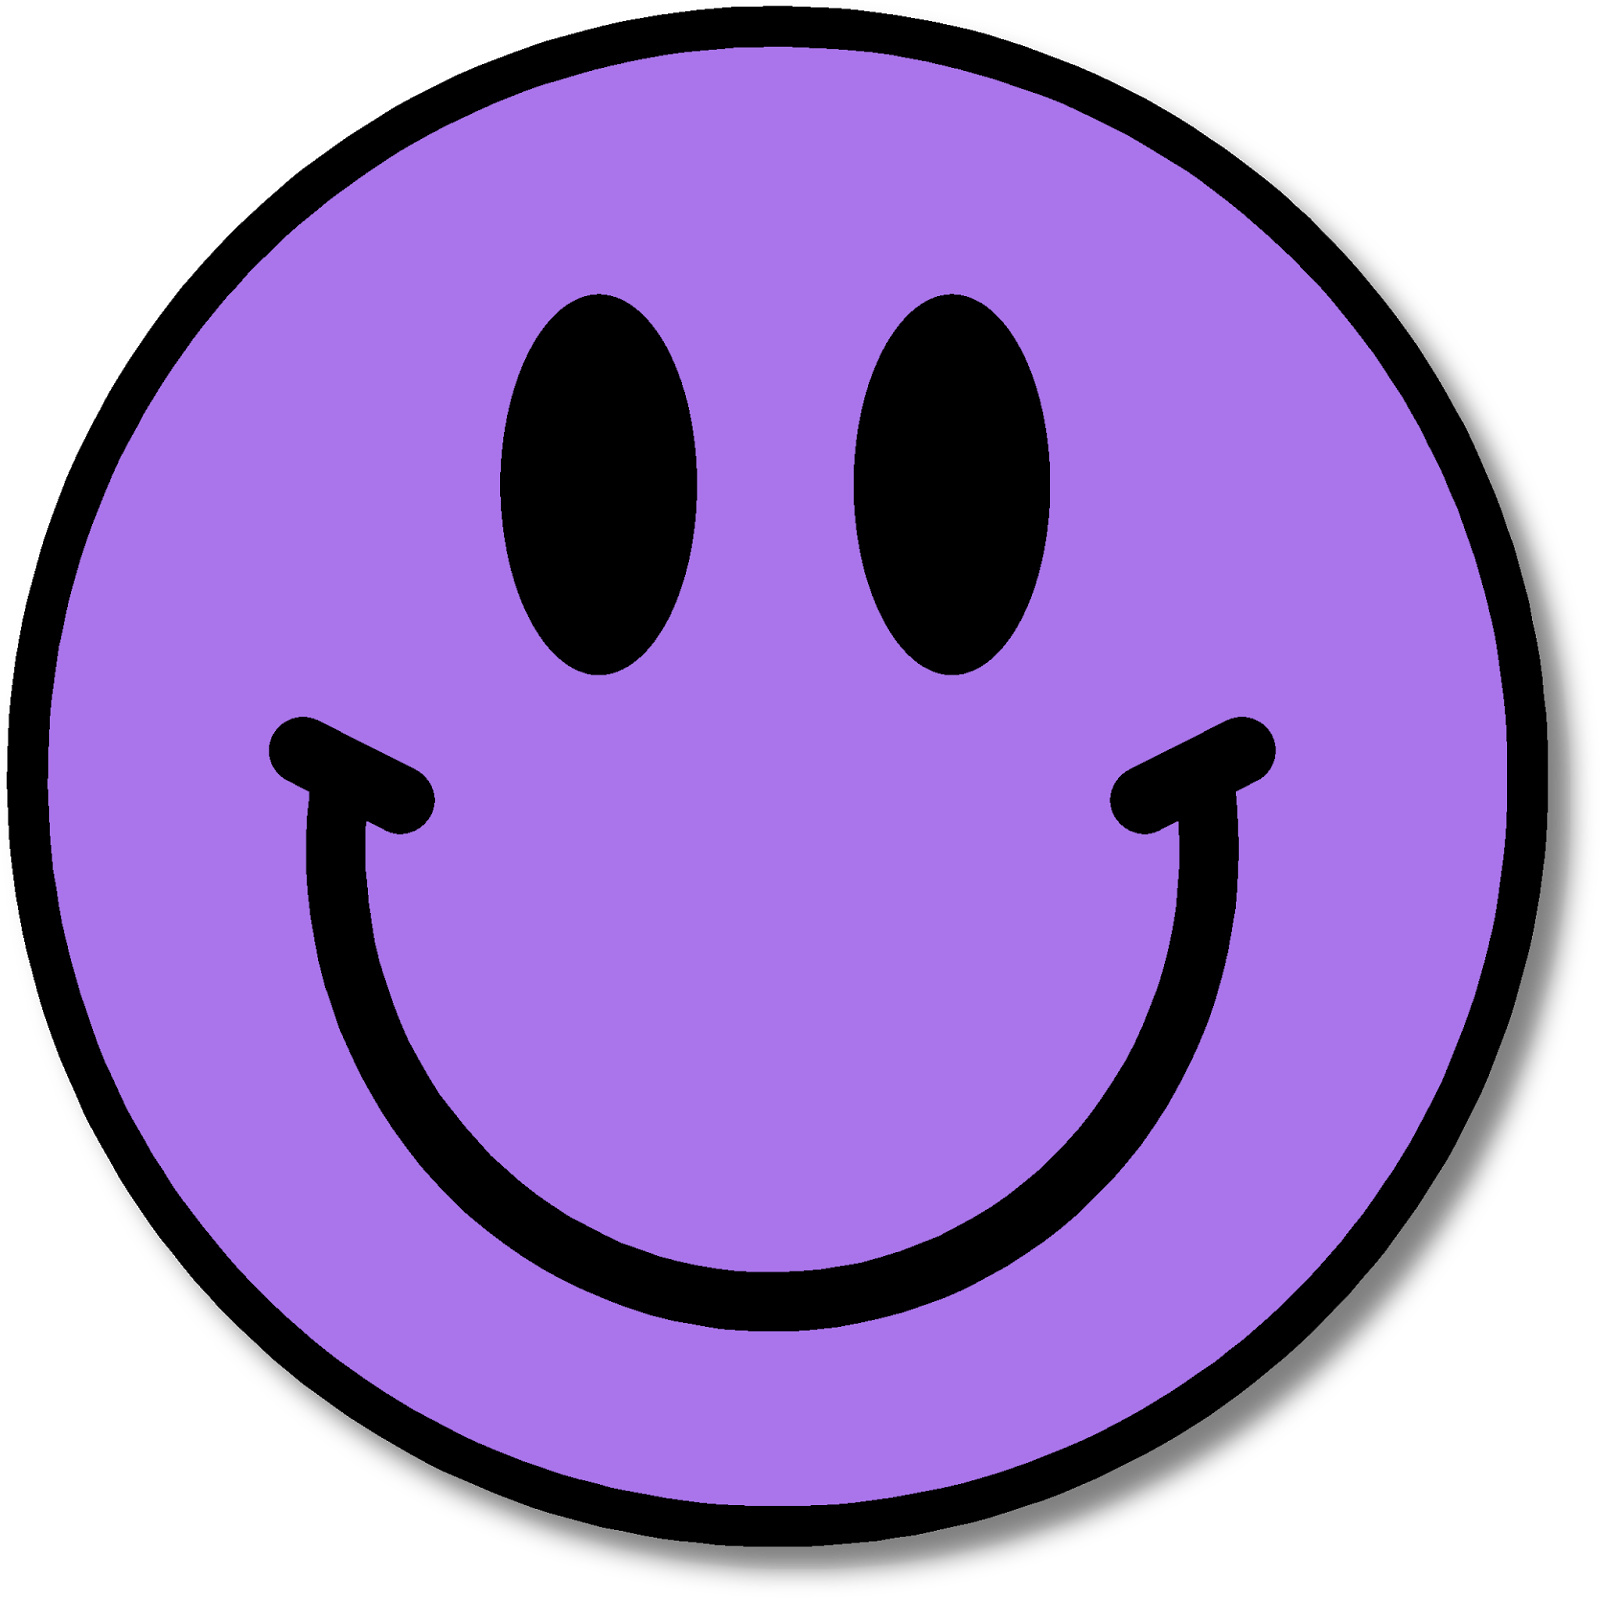 Happy smiley jokingart com. Circle clipart face